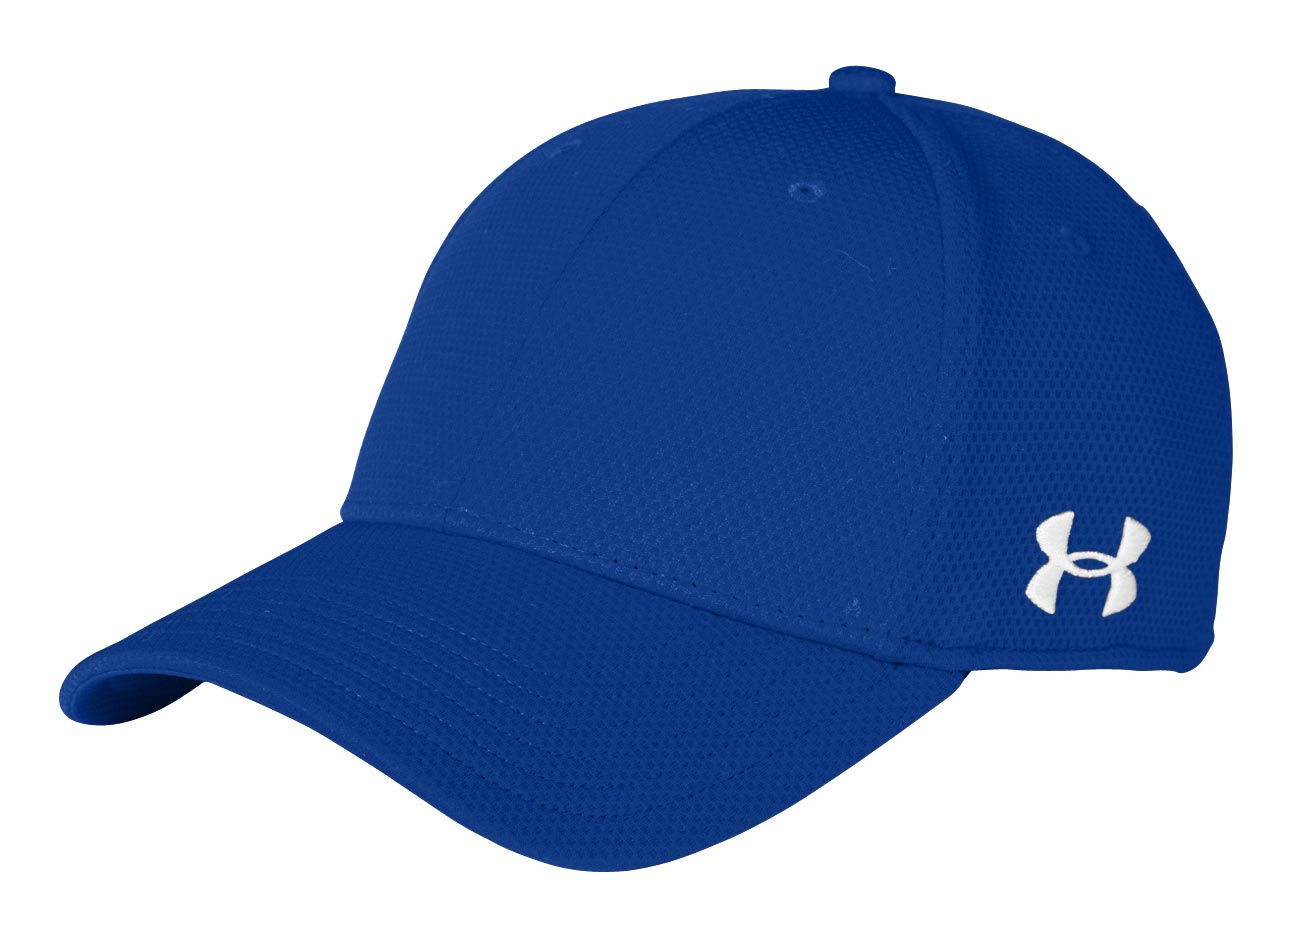 e9a8db1acb2 Under Armour Curved Bill Solid Cap - Design Online